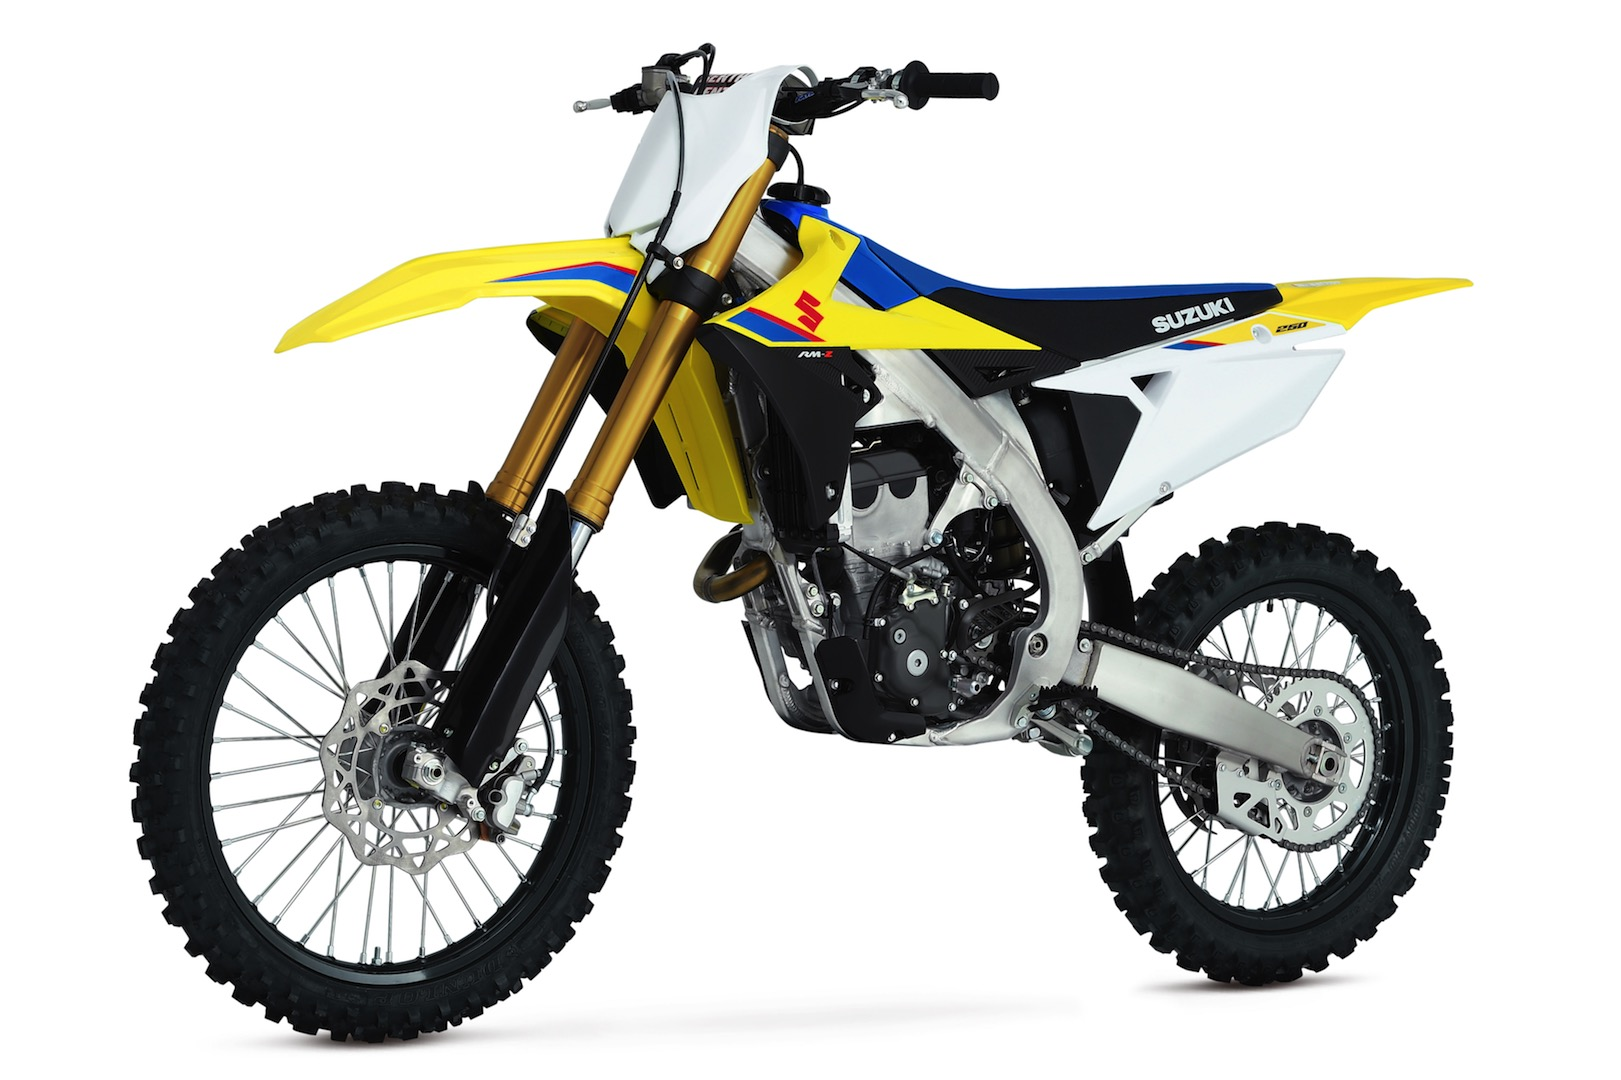 2019 Suzuki RM-Z250 First Look - MX